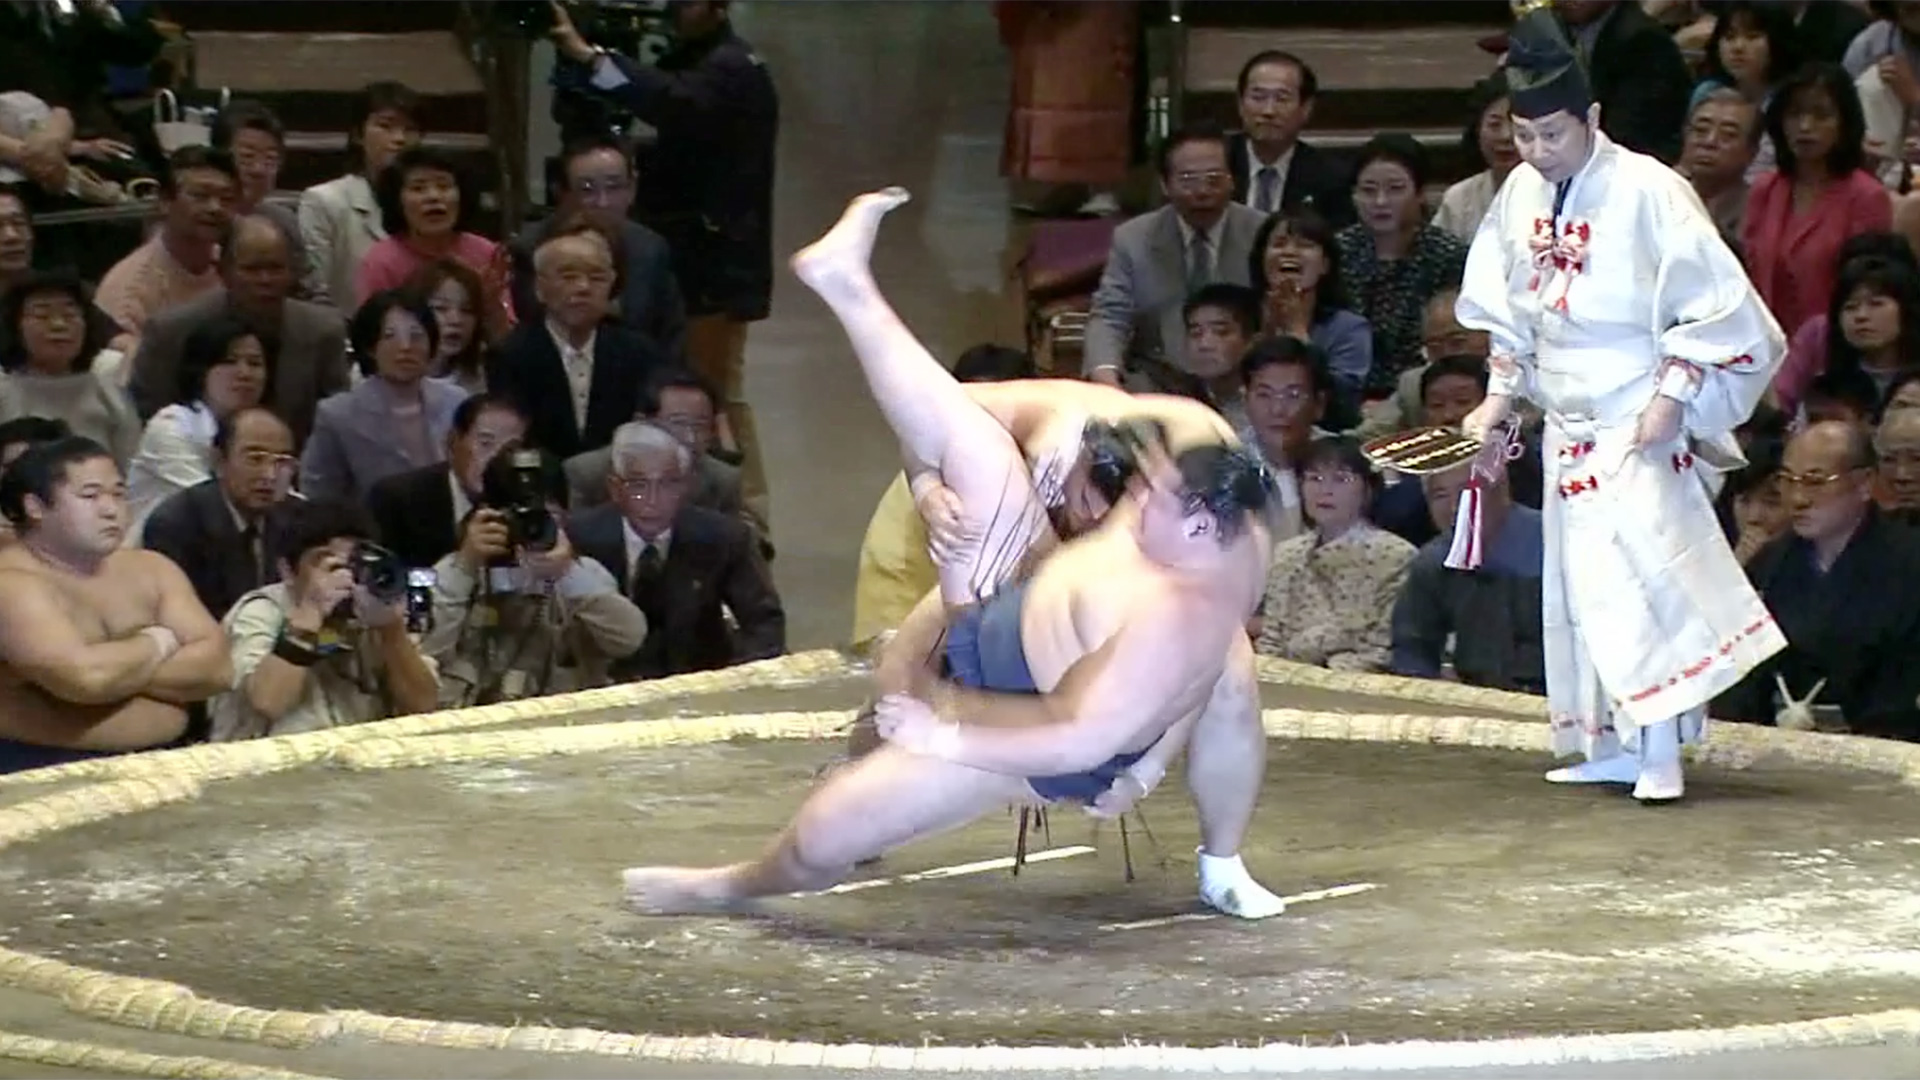 Sotokomata/ Over thigh scooping body drop